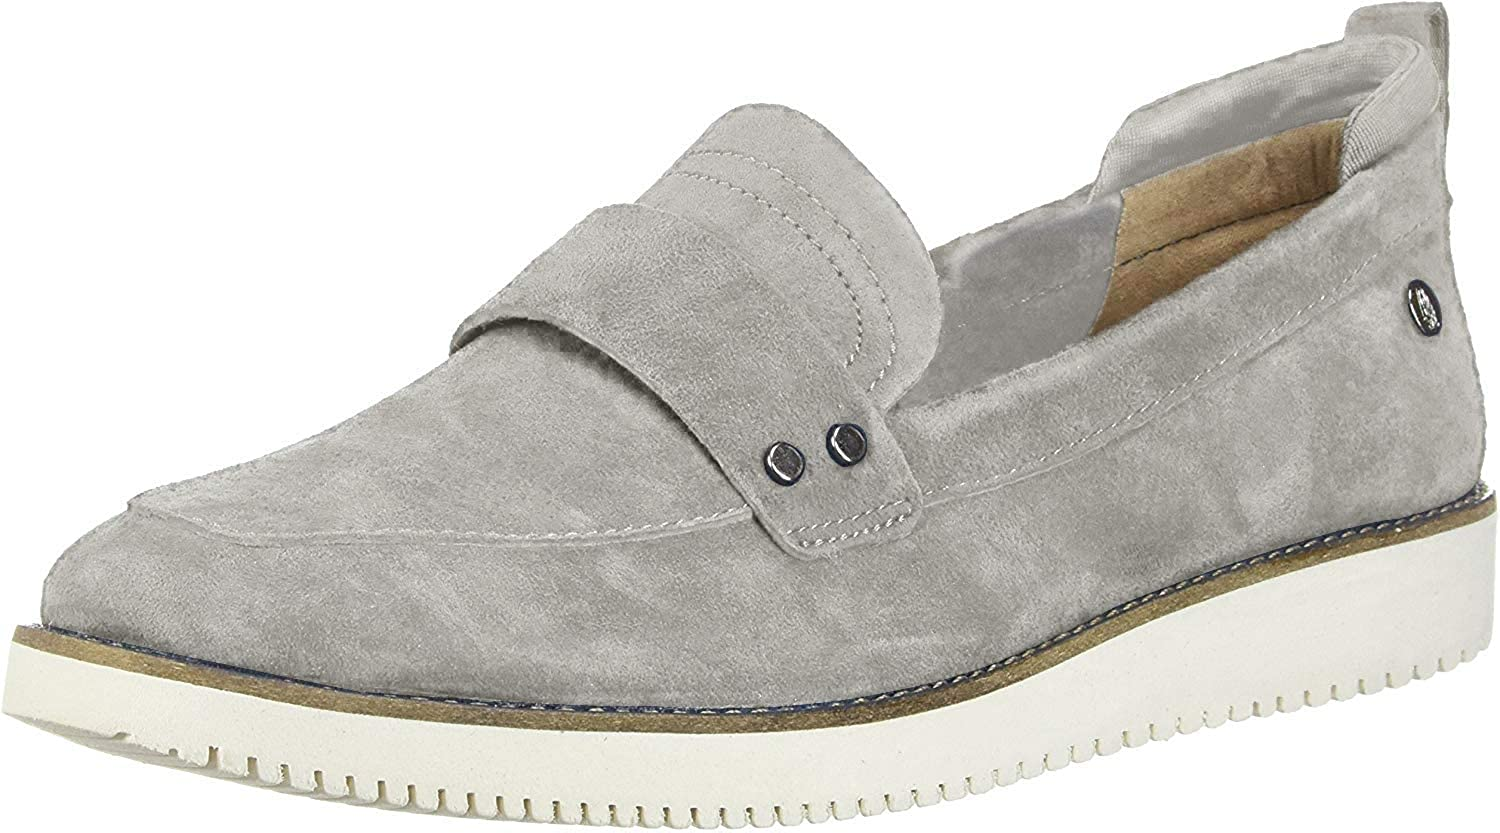 Hush Puppies Womens Chowchow Loafer Frost Grey Suede 6 W (D)